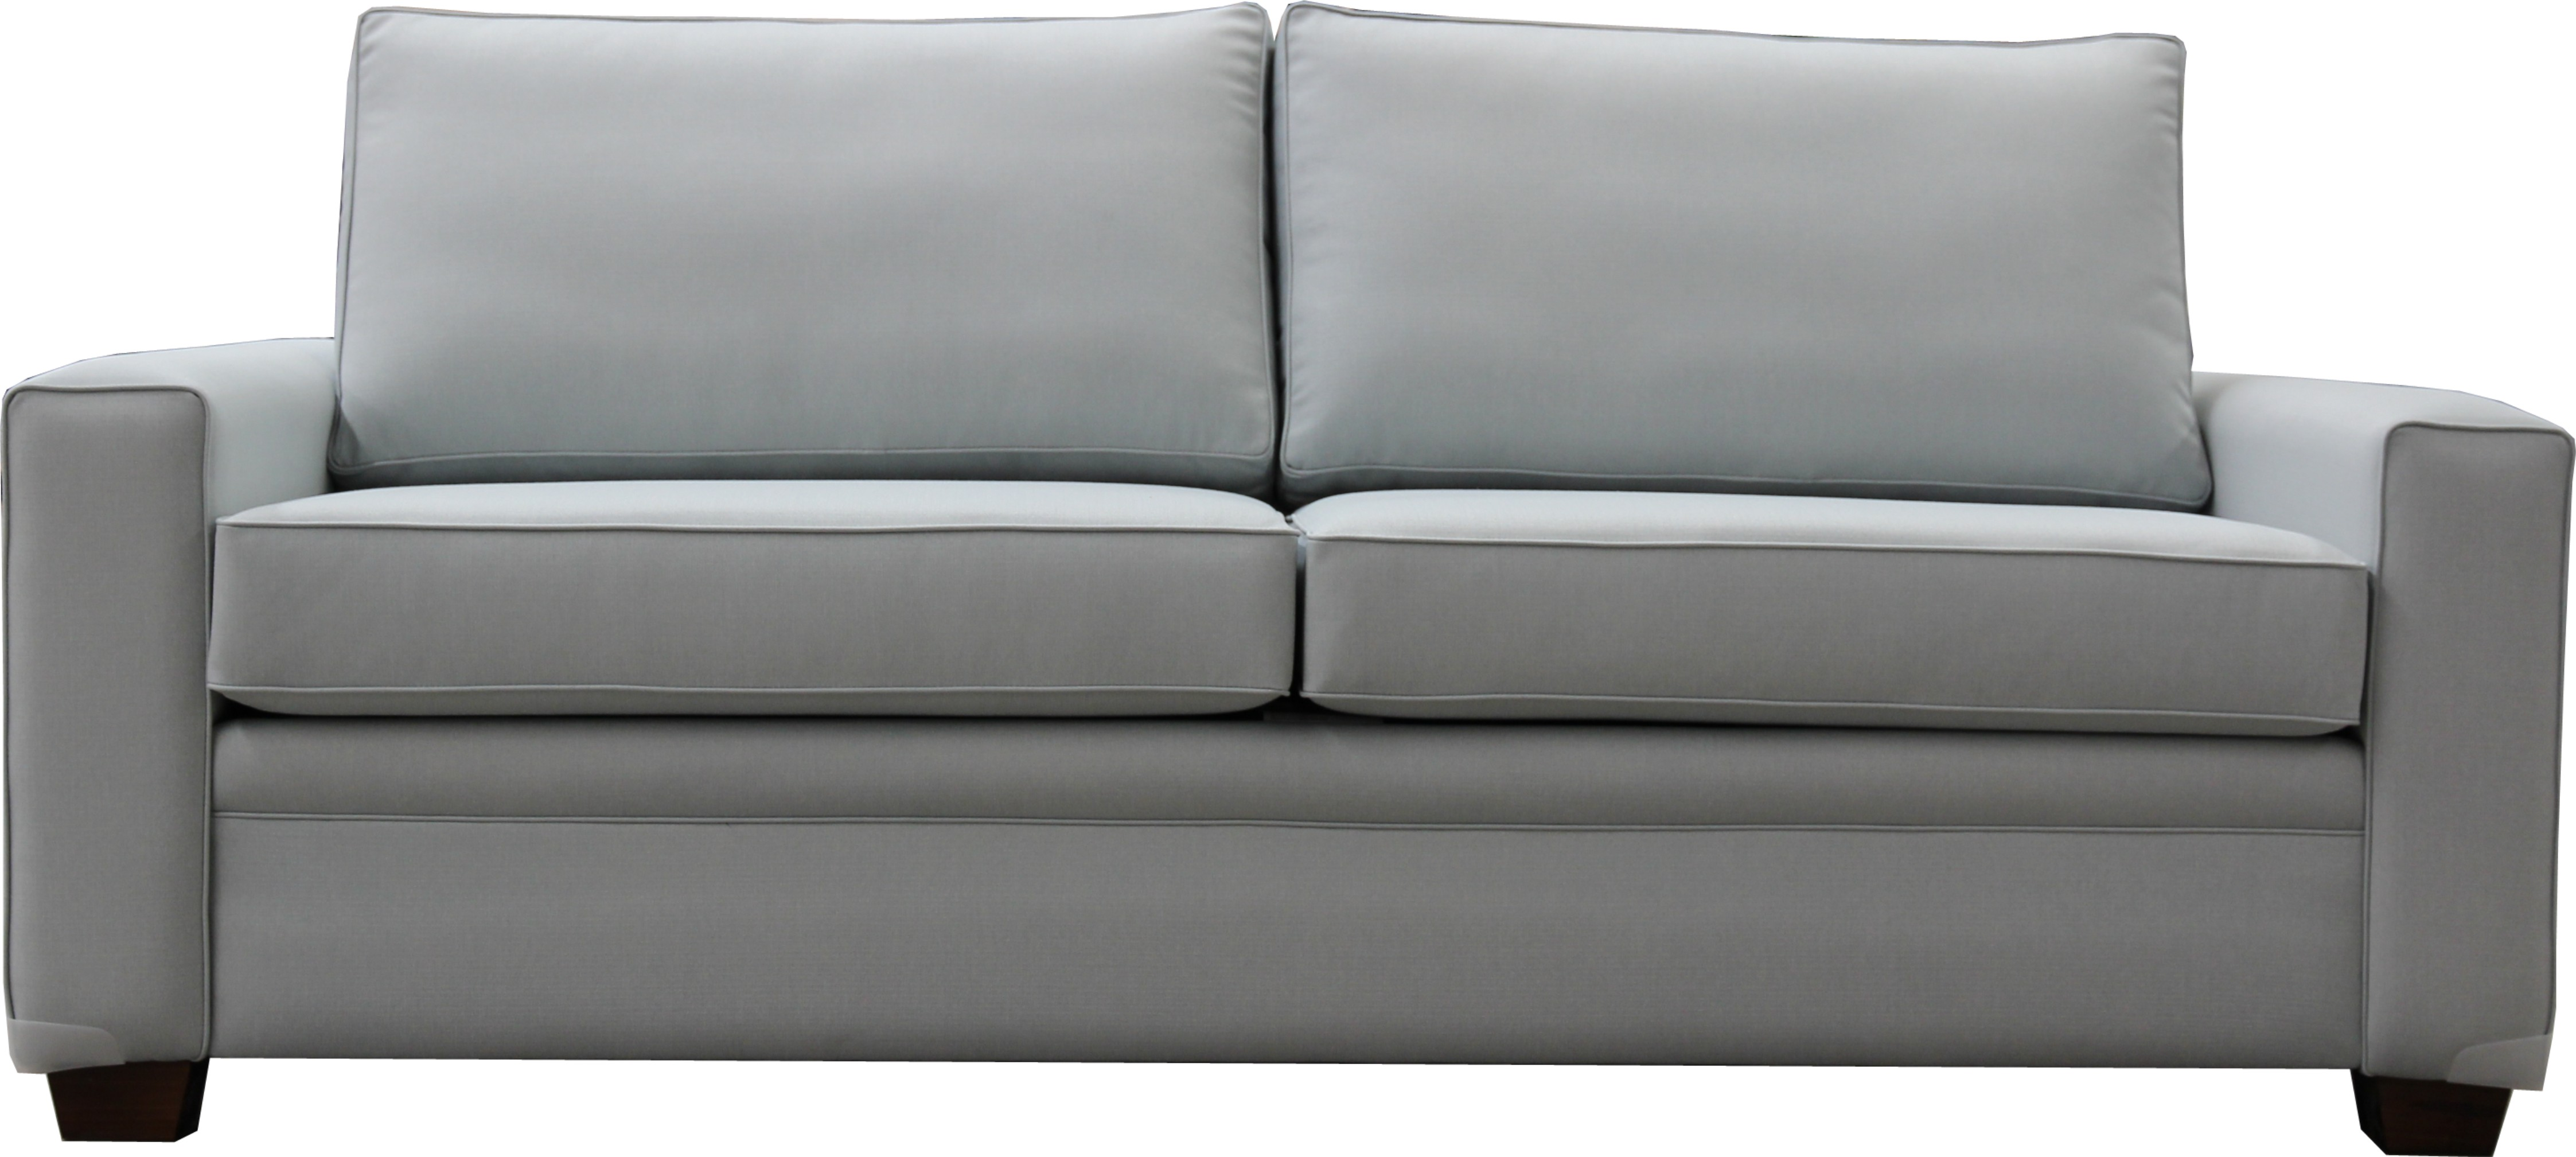 modern soma mid article and to gray scandinavian sofa couch dawn furniture sectionals product bed century right